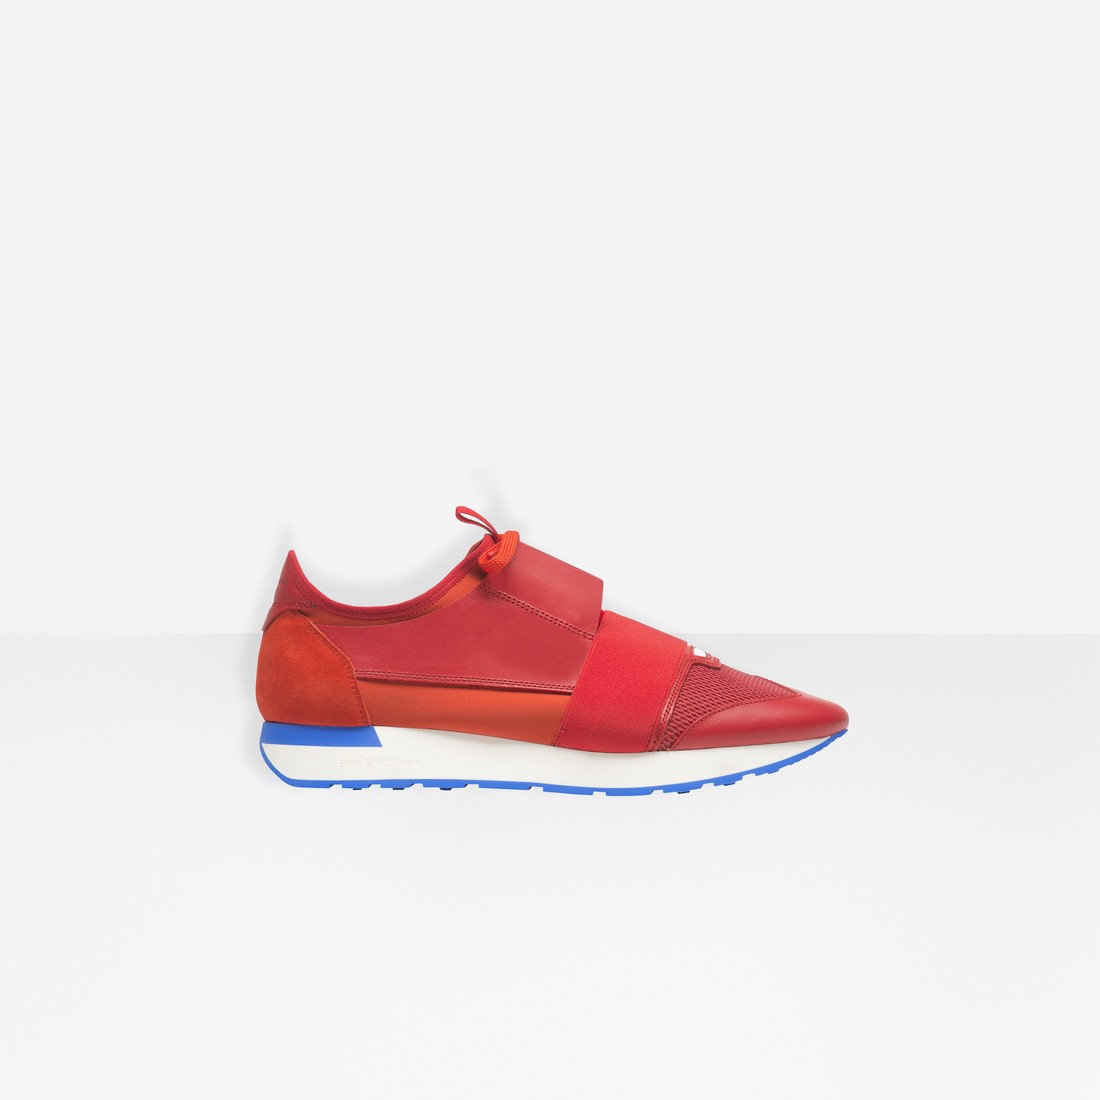 Balenciaga Hombre Race Runners Multimaterial Contrasted Runners Rojas 506328W0YXS6501